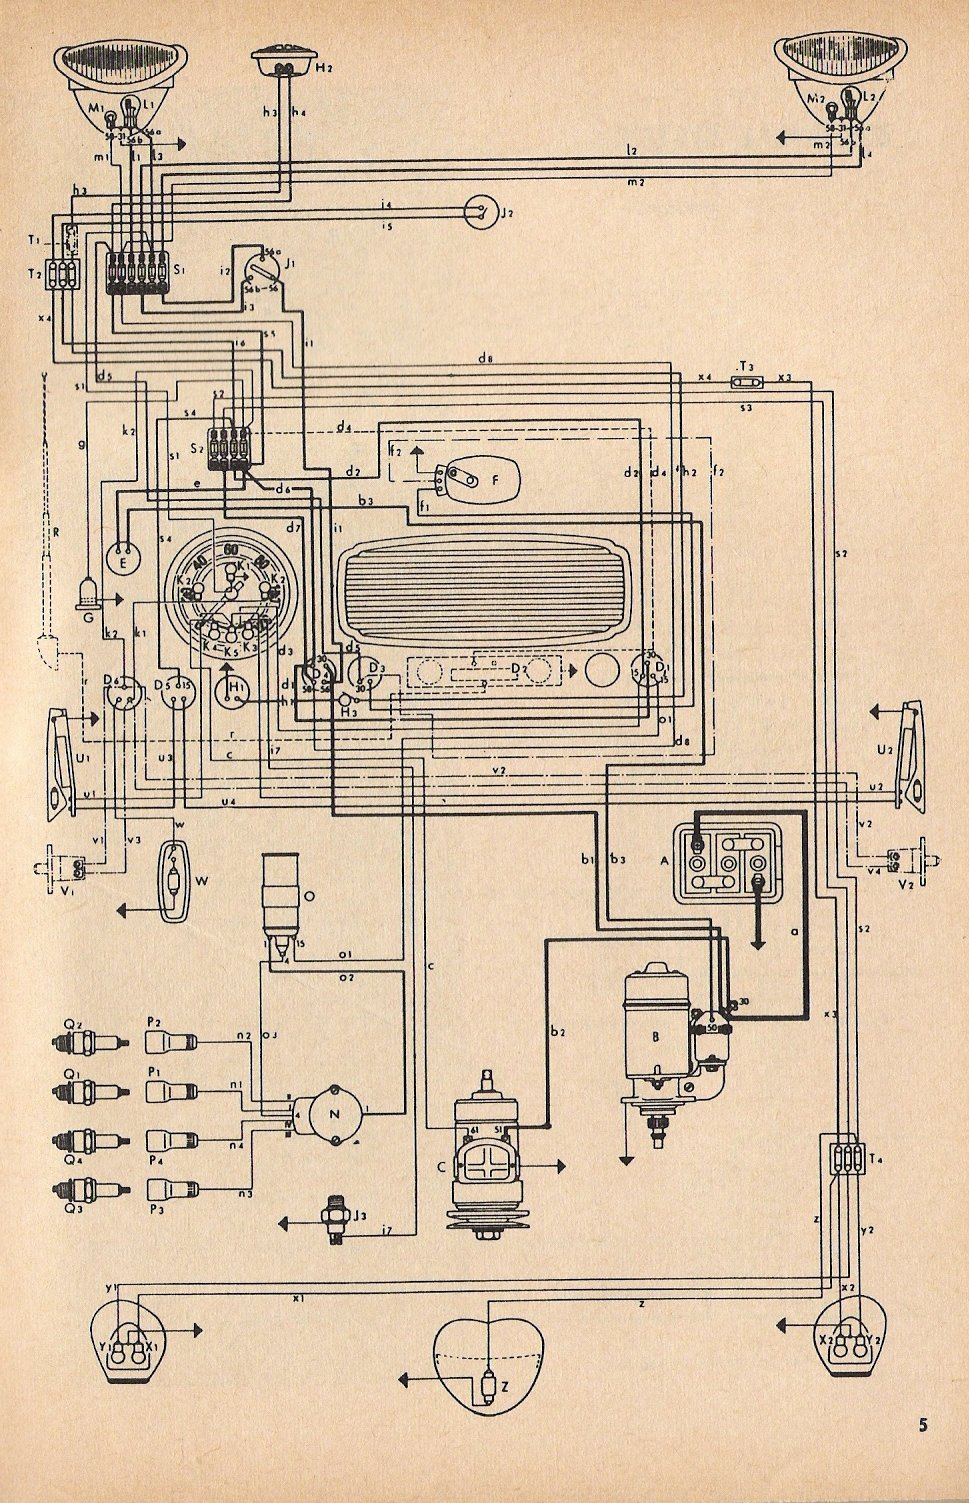 Type 1 Wiring Diagrams 1967 Pontiac Grand Prix Diagram Schematic